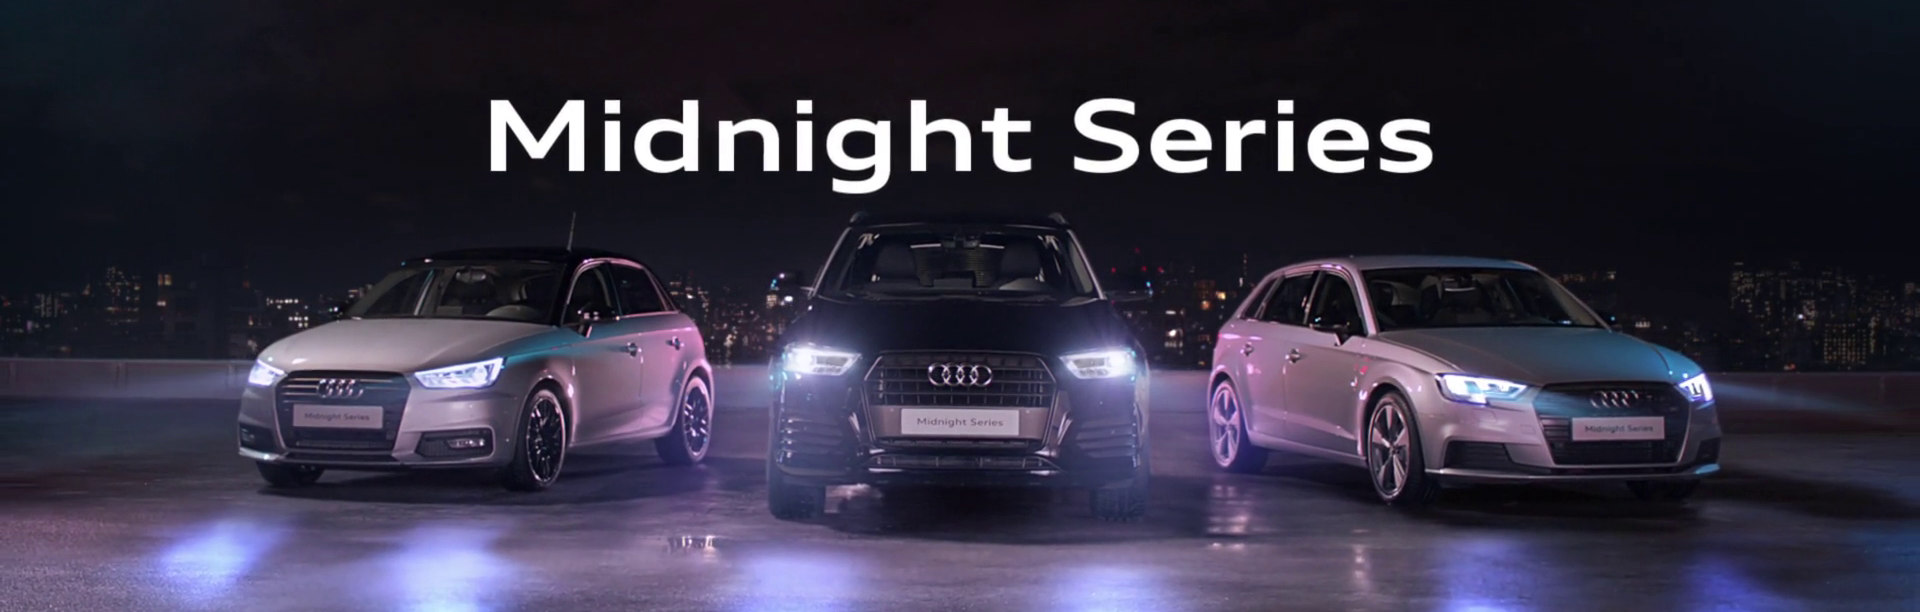 audi midnight series s ries limit es audi a1 a3 et q3 midnight series audi le mans. Black Bedroom Furniture Sets. Home Design Ideas